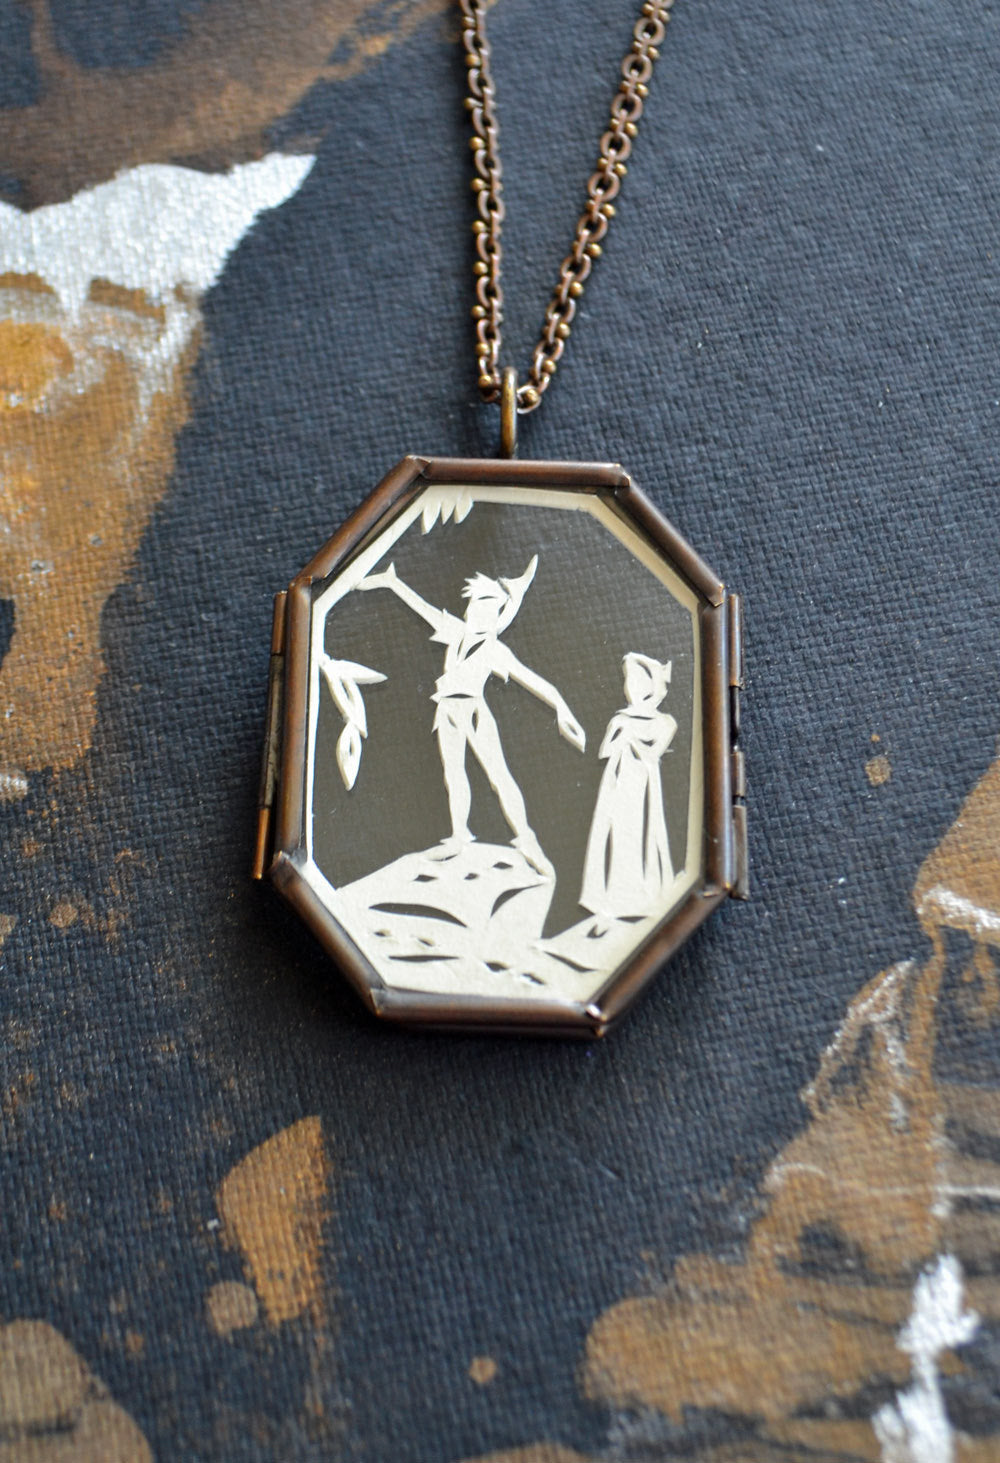 PETER PAN Locket - Hand-Cut Miniature Silhouette Papercut, Glass Locket Necklace